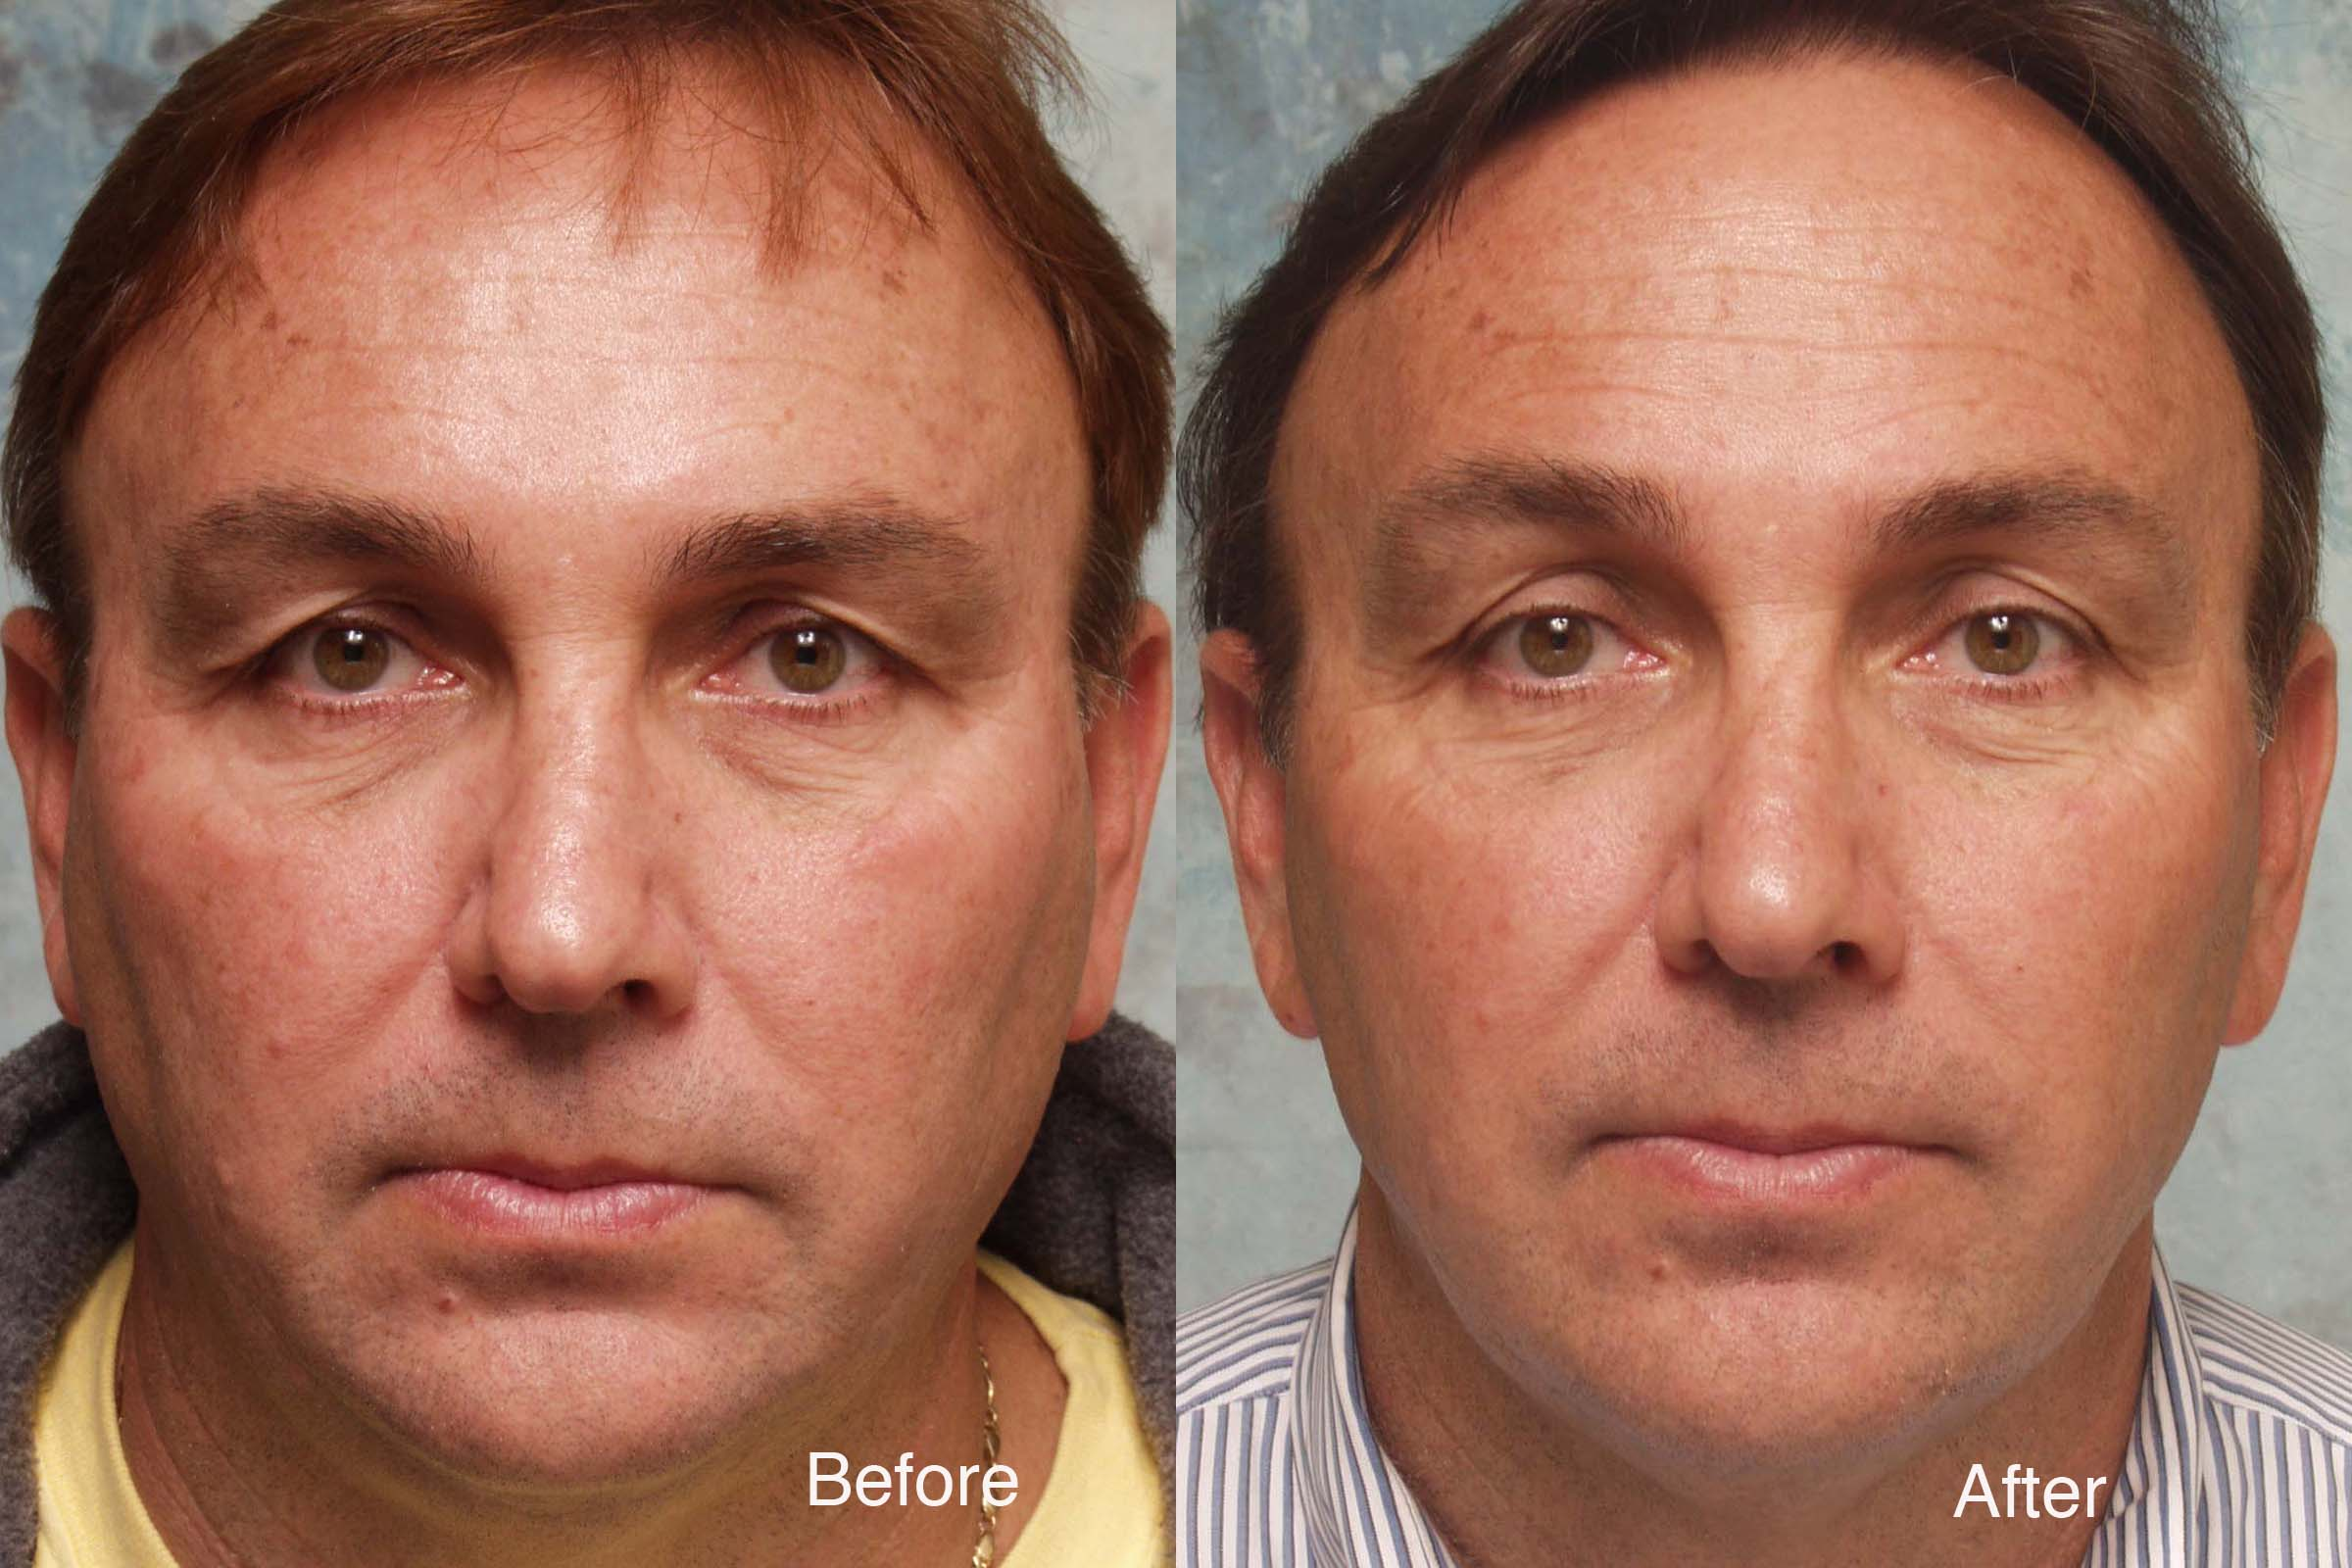 Facial surgery for lower facial